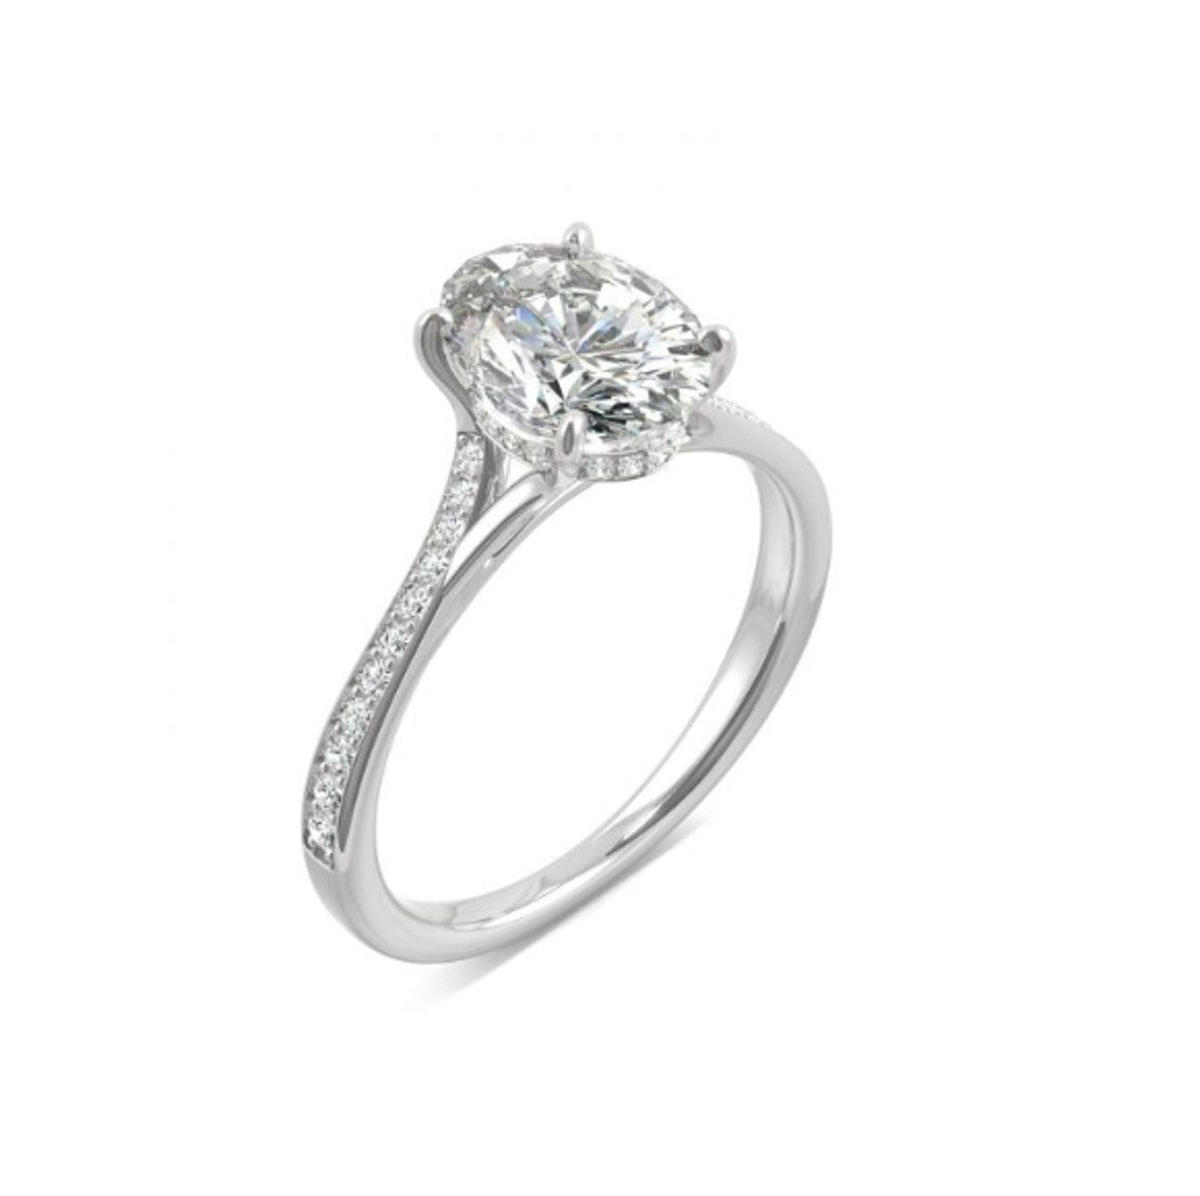 Oval Side-Stone Engagement Ring with Hidden Halo Near-Colorless Moissanite 2.25CTW in 14K White Gold